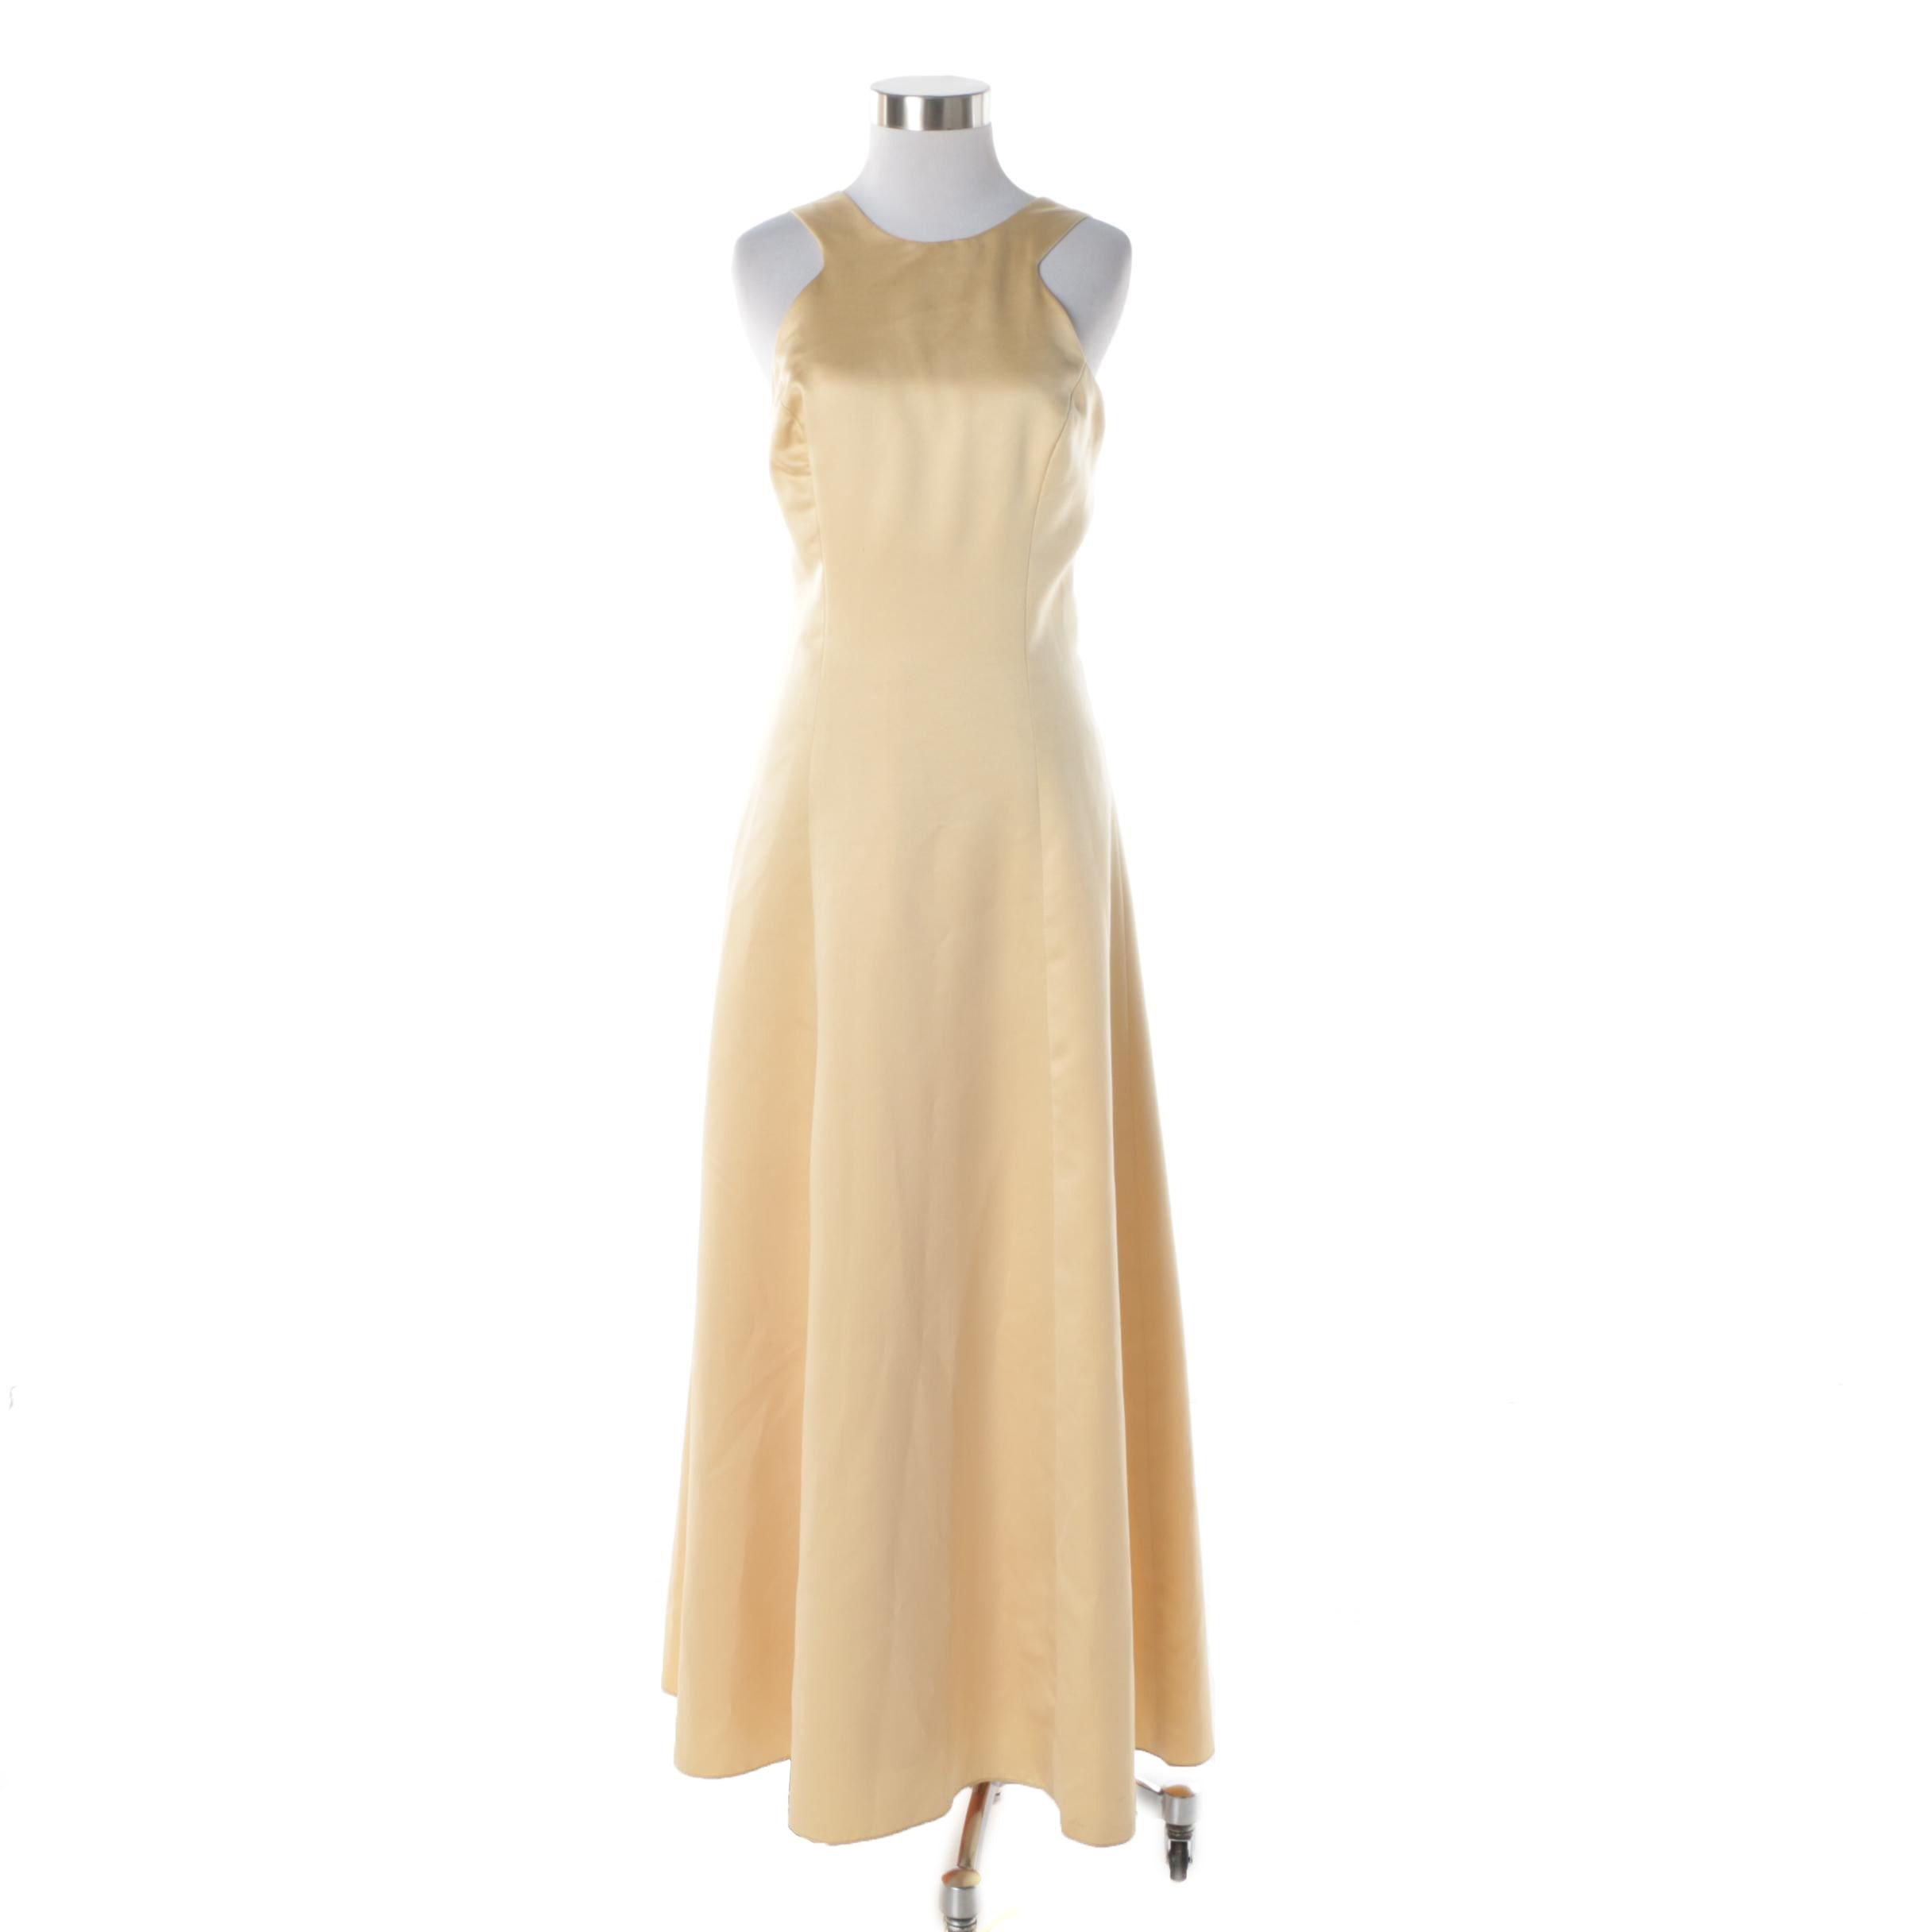 Jim Hjelm Occasions Sleeveless Evening Gown in Cream